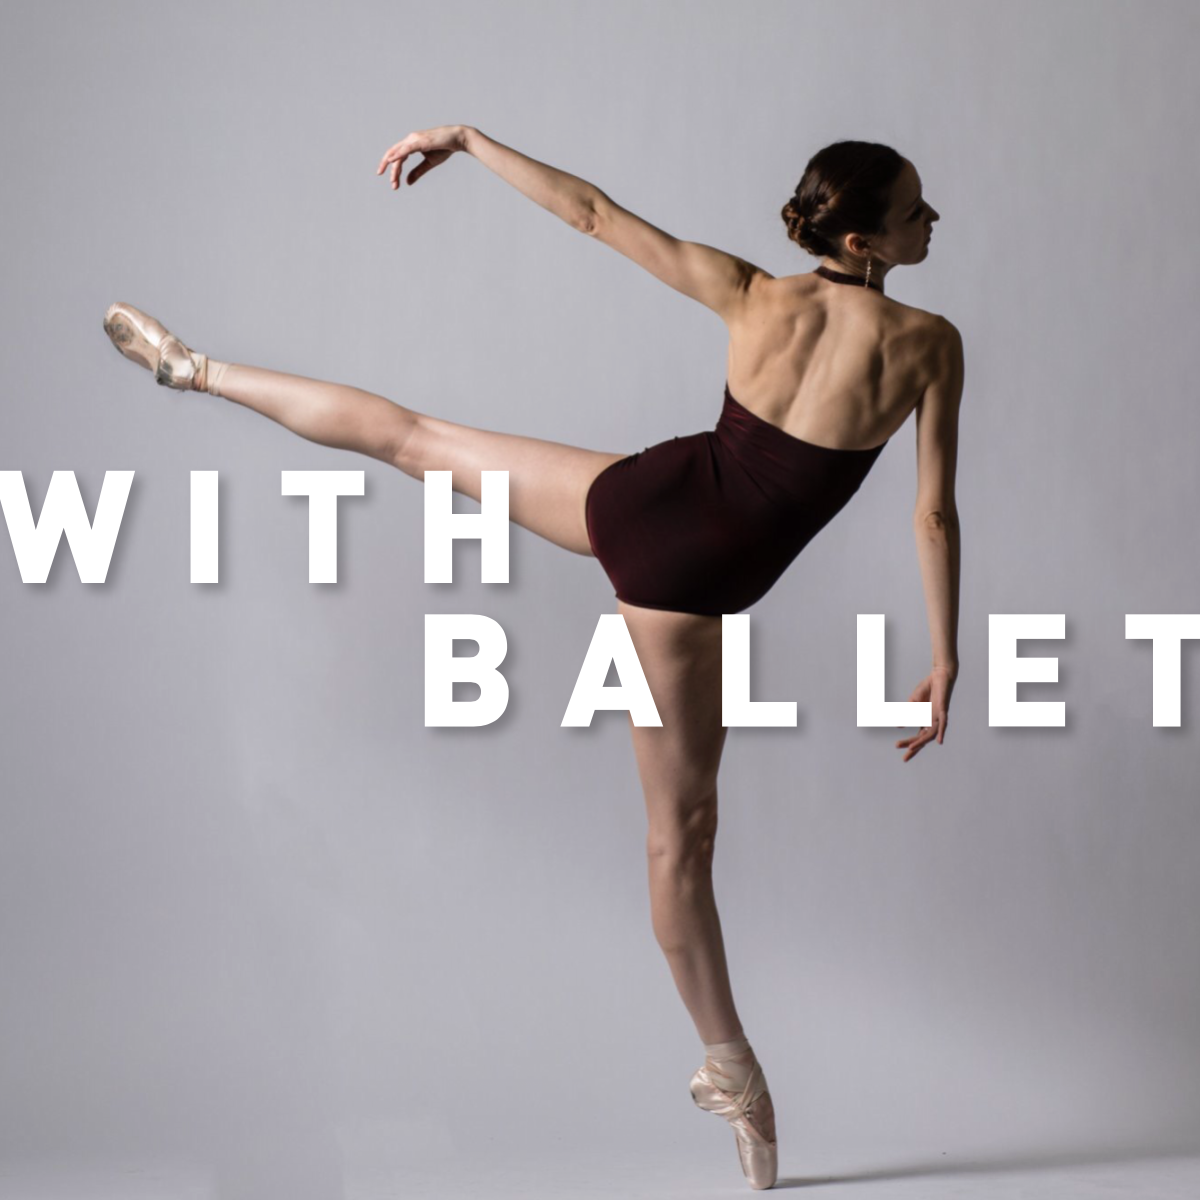 Featured by New York City Ballet, in their #withballet social media campaign